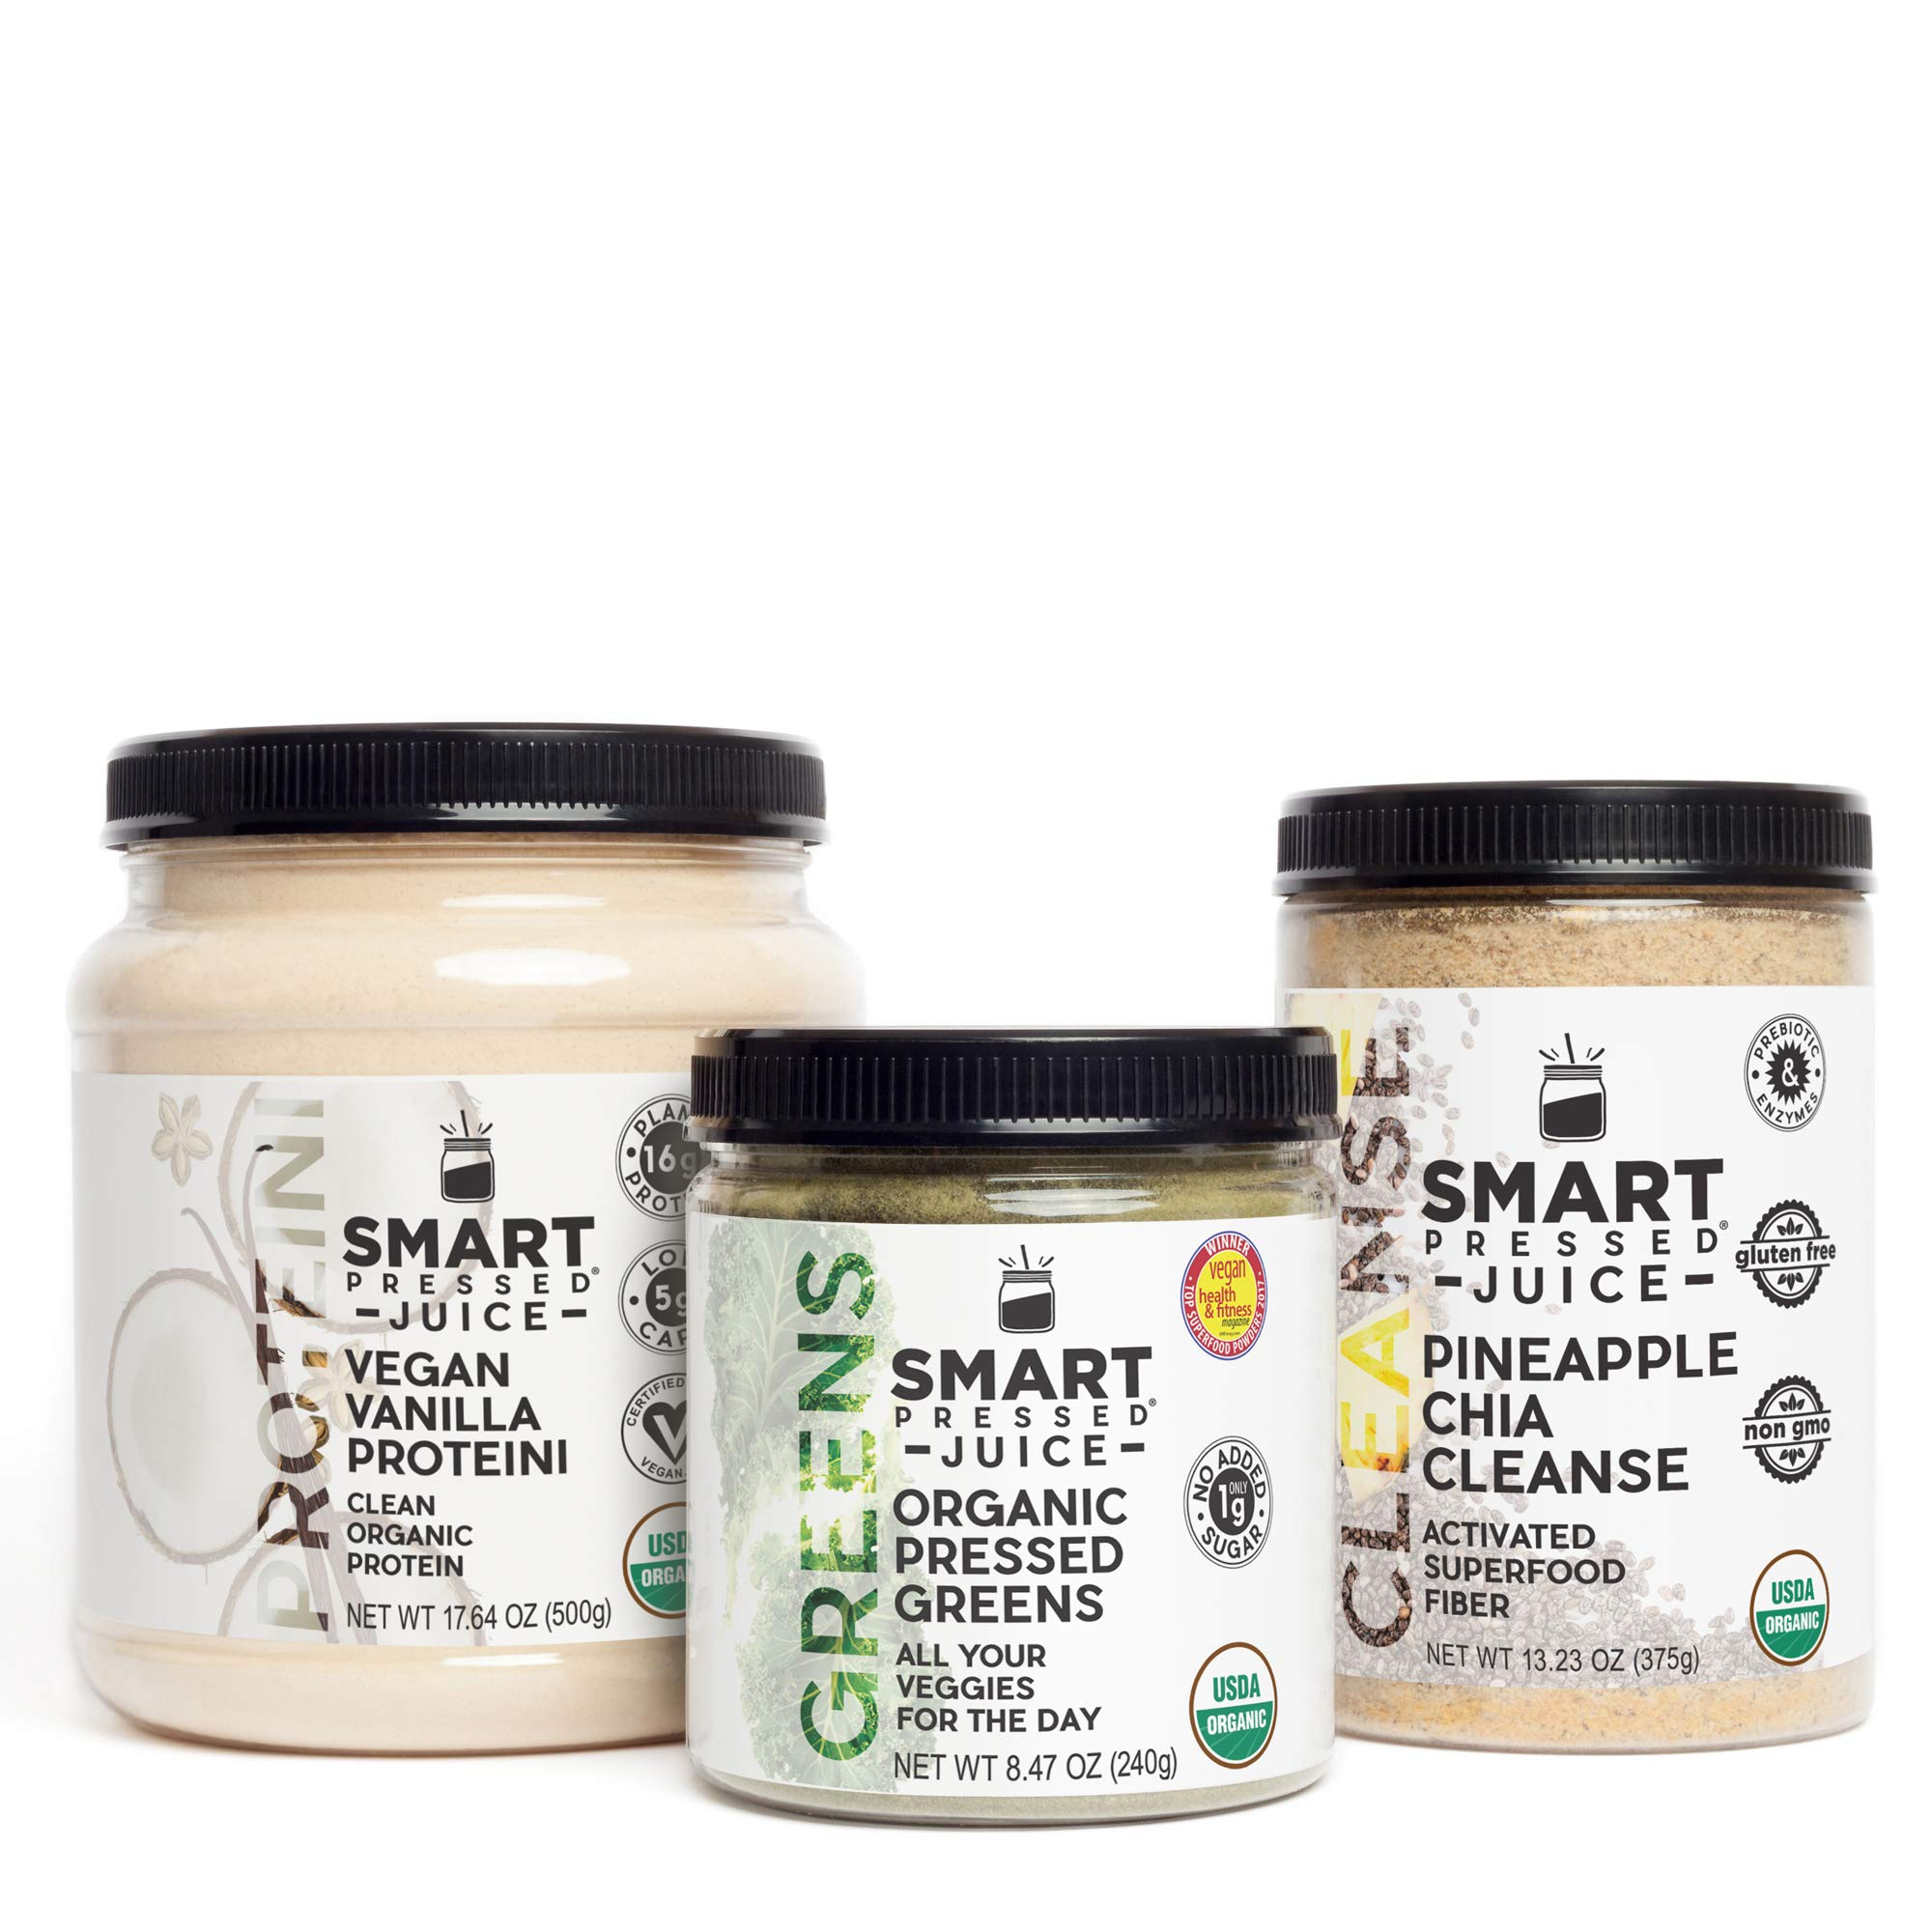 Weight Loss Maintenance Program | Smart Pressed Juice | Juice Cleanse Detox Weight Loss System Hunger Control Meal Replacement Keto-friendly | Organic Pressed Greens Juice Protein Superfood Fiber